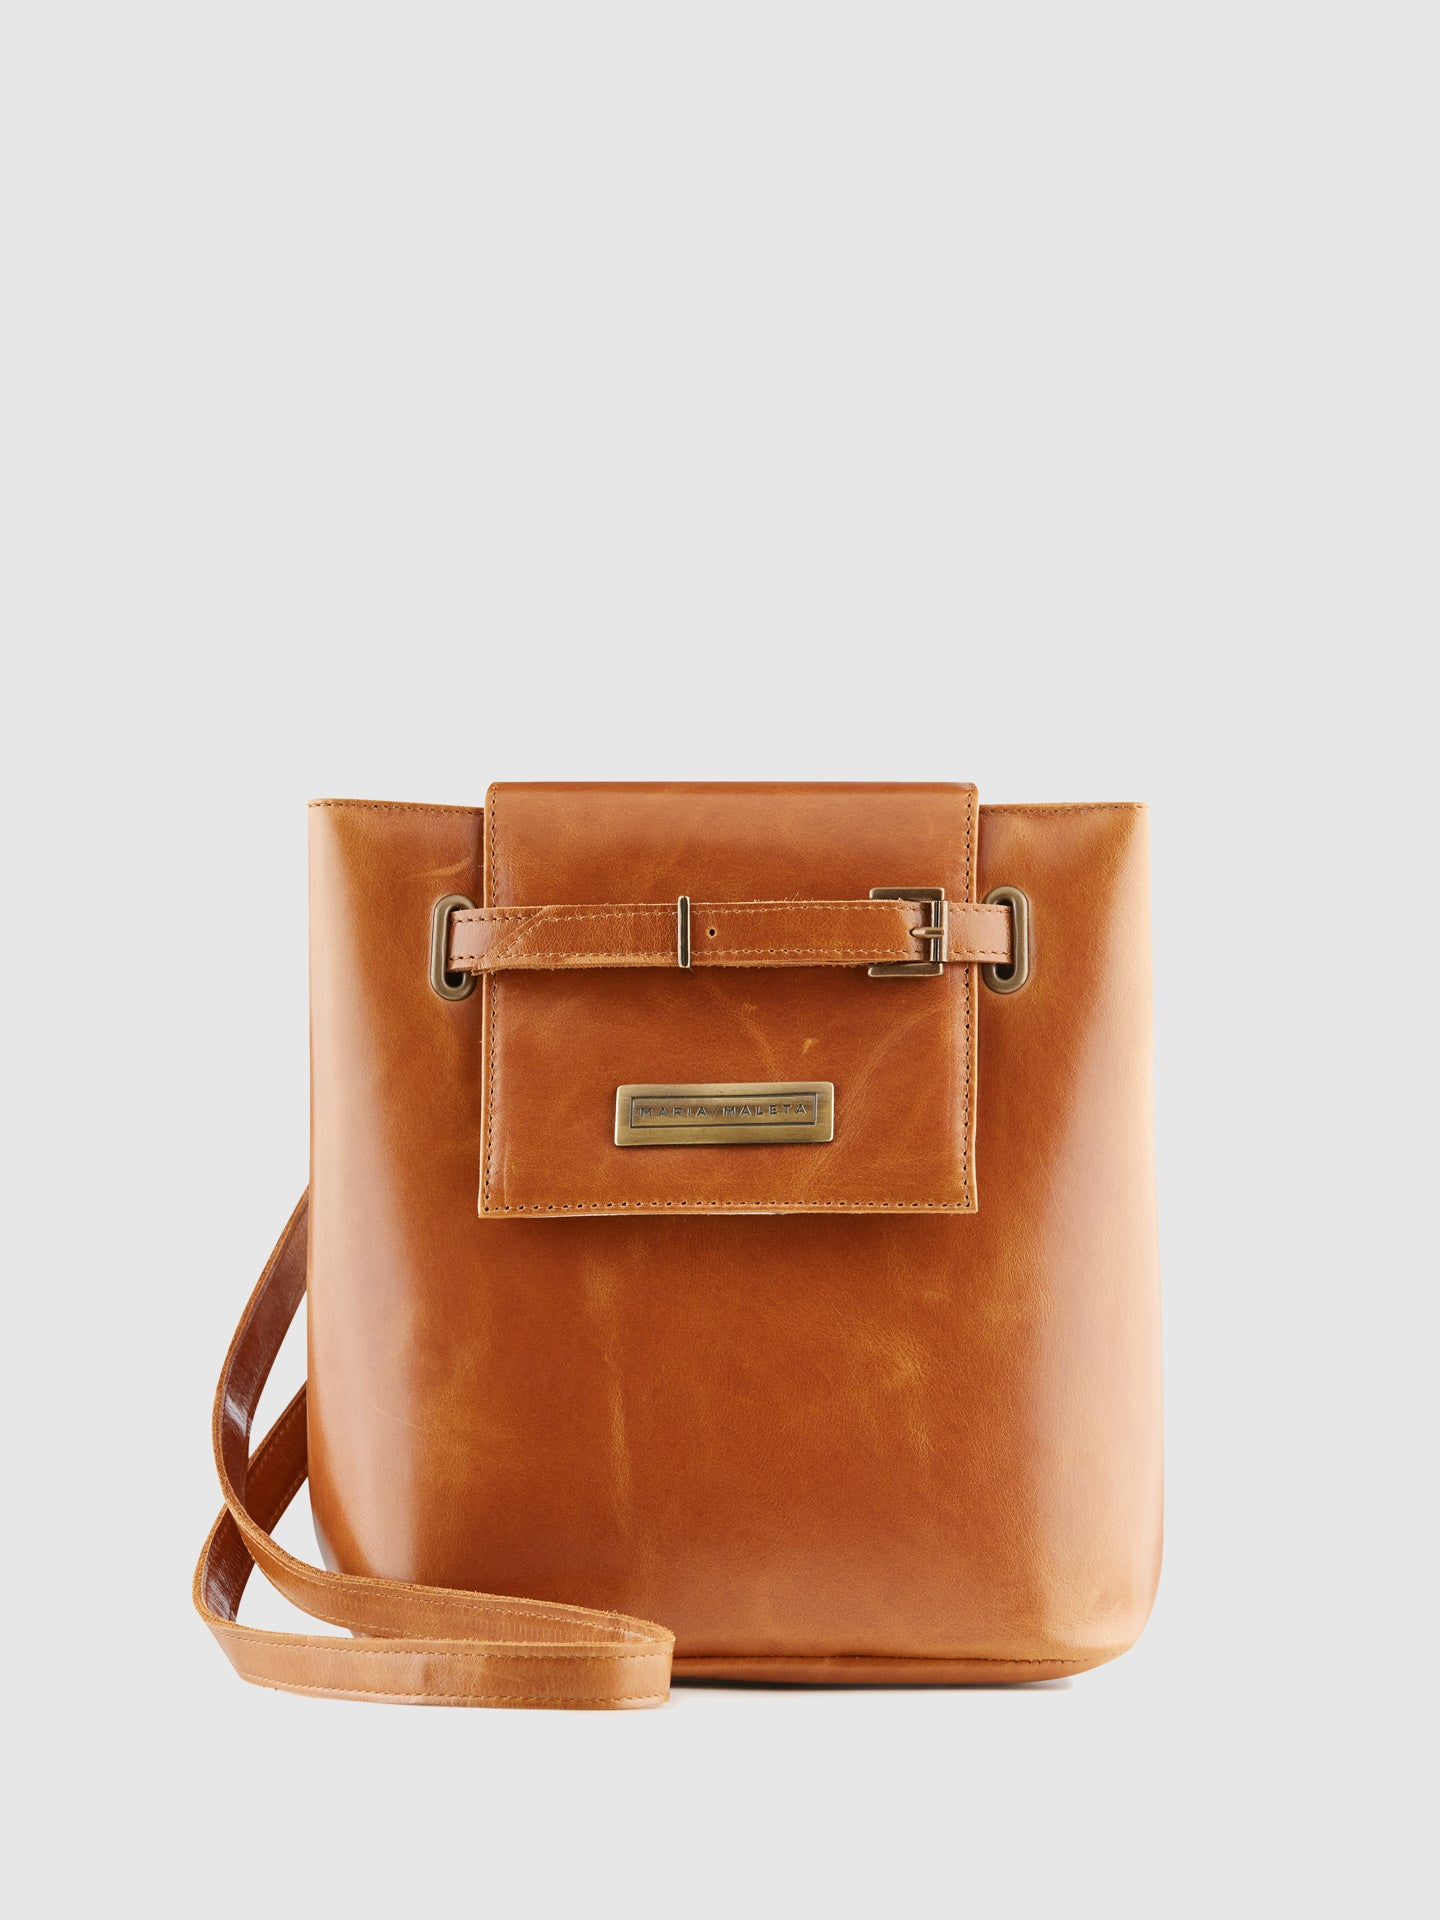 Maria Maleta Brown Leather Crossbody Bag